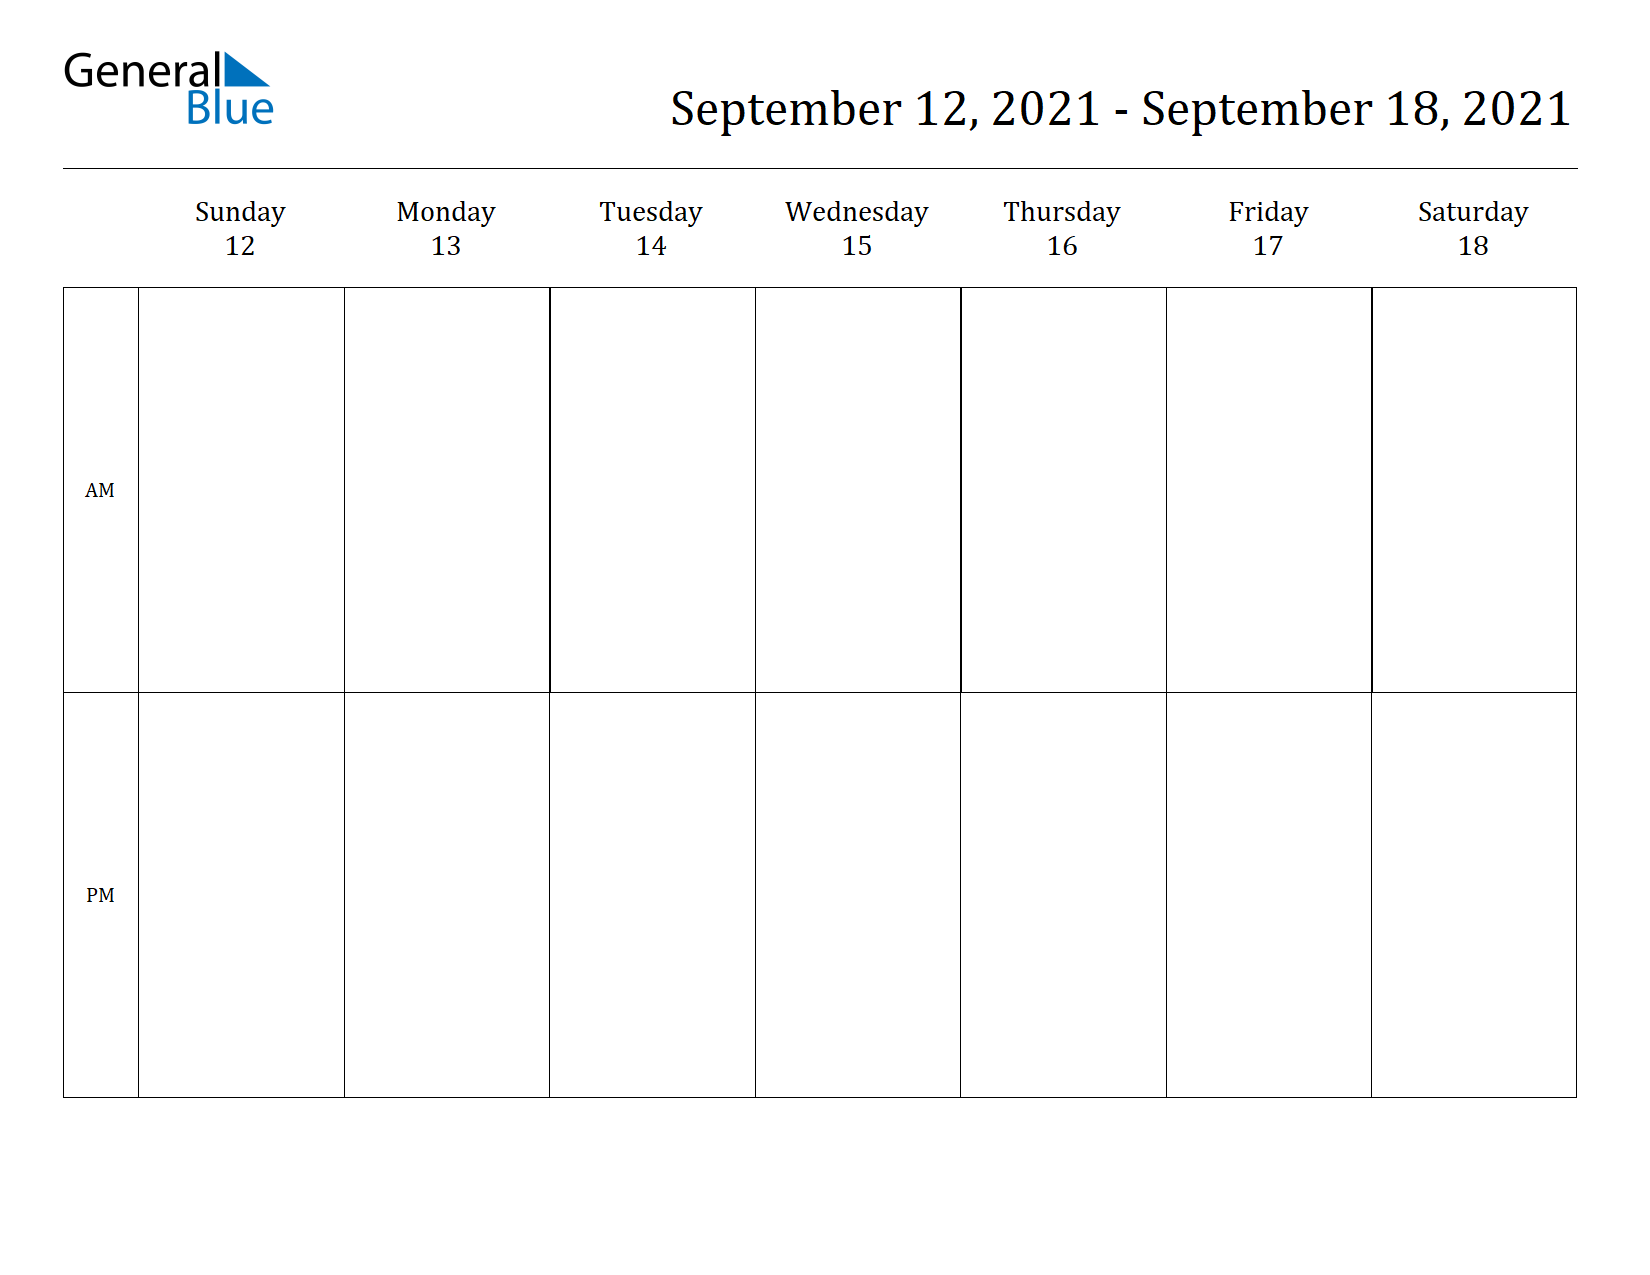 Weekly Calendar for Sep 12, 2021 to Sep 18, 2021